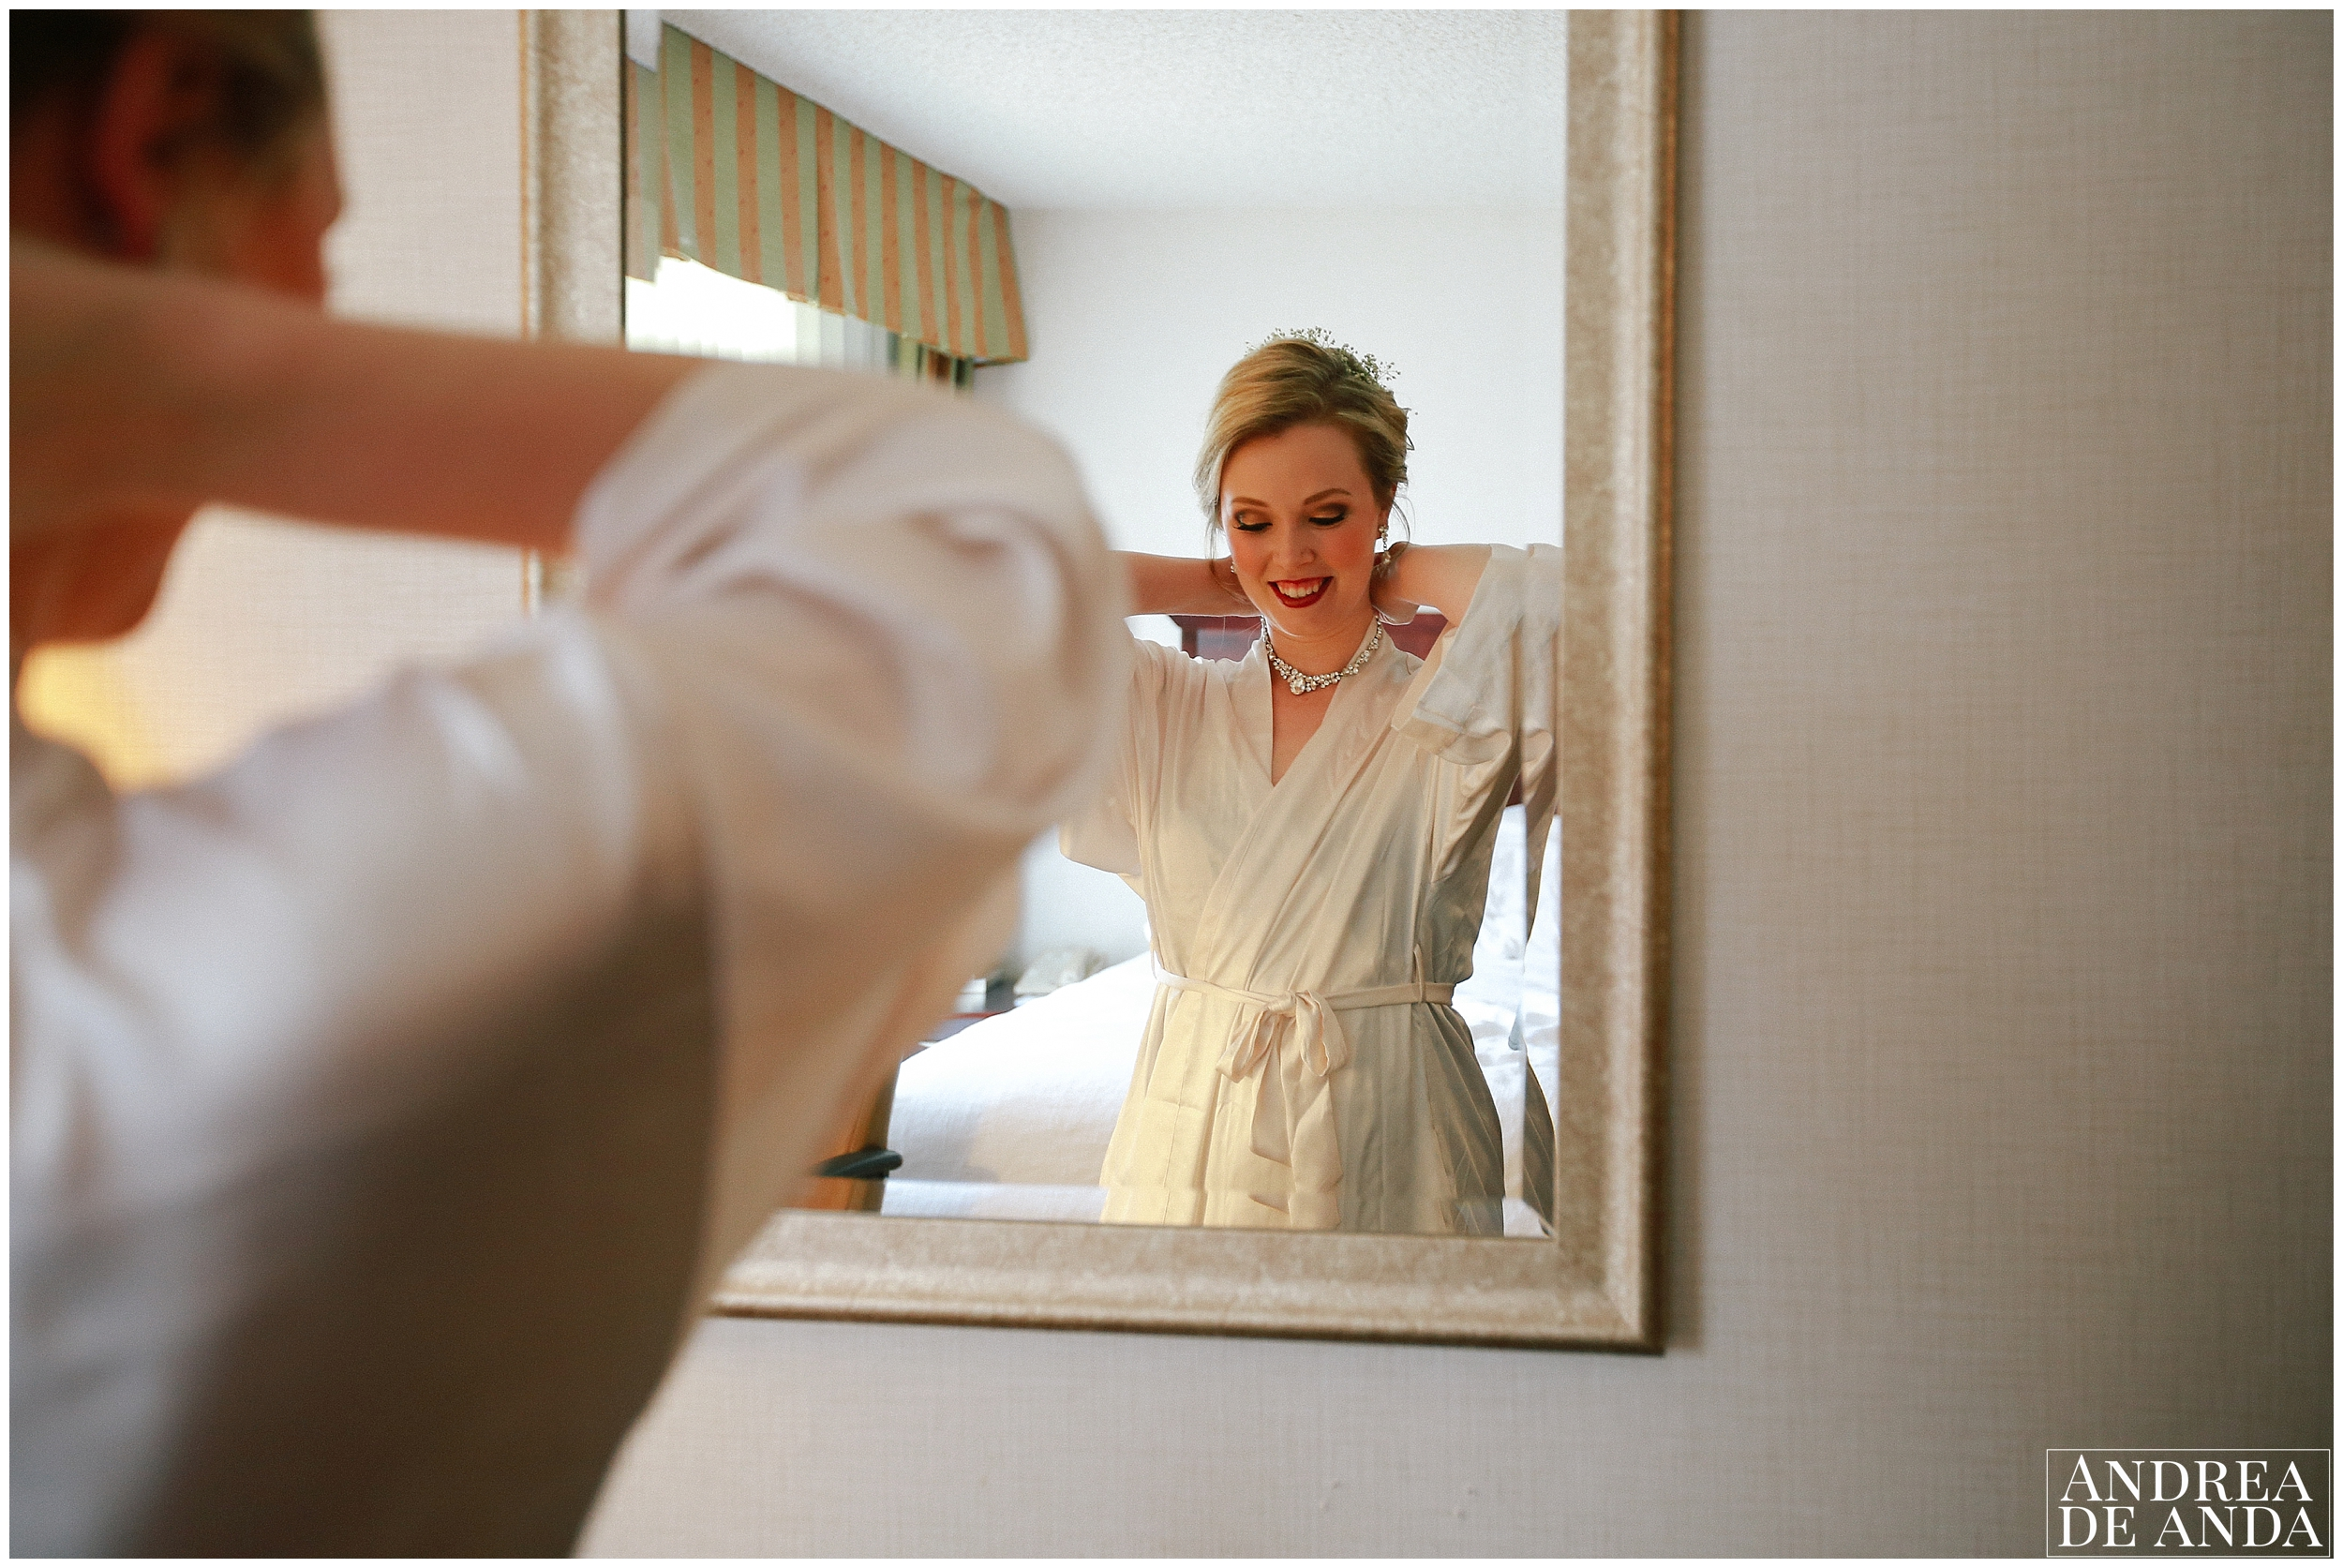 Bride getting ready at hotel room